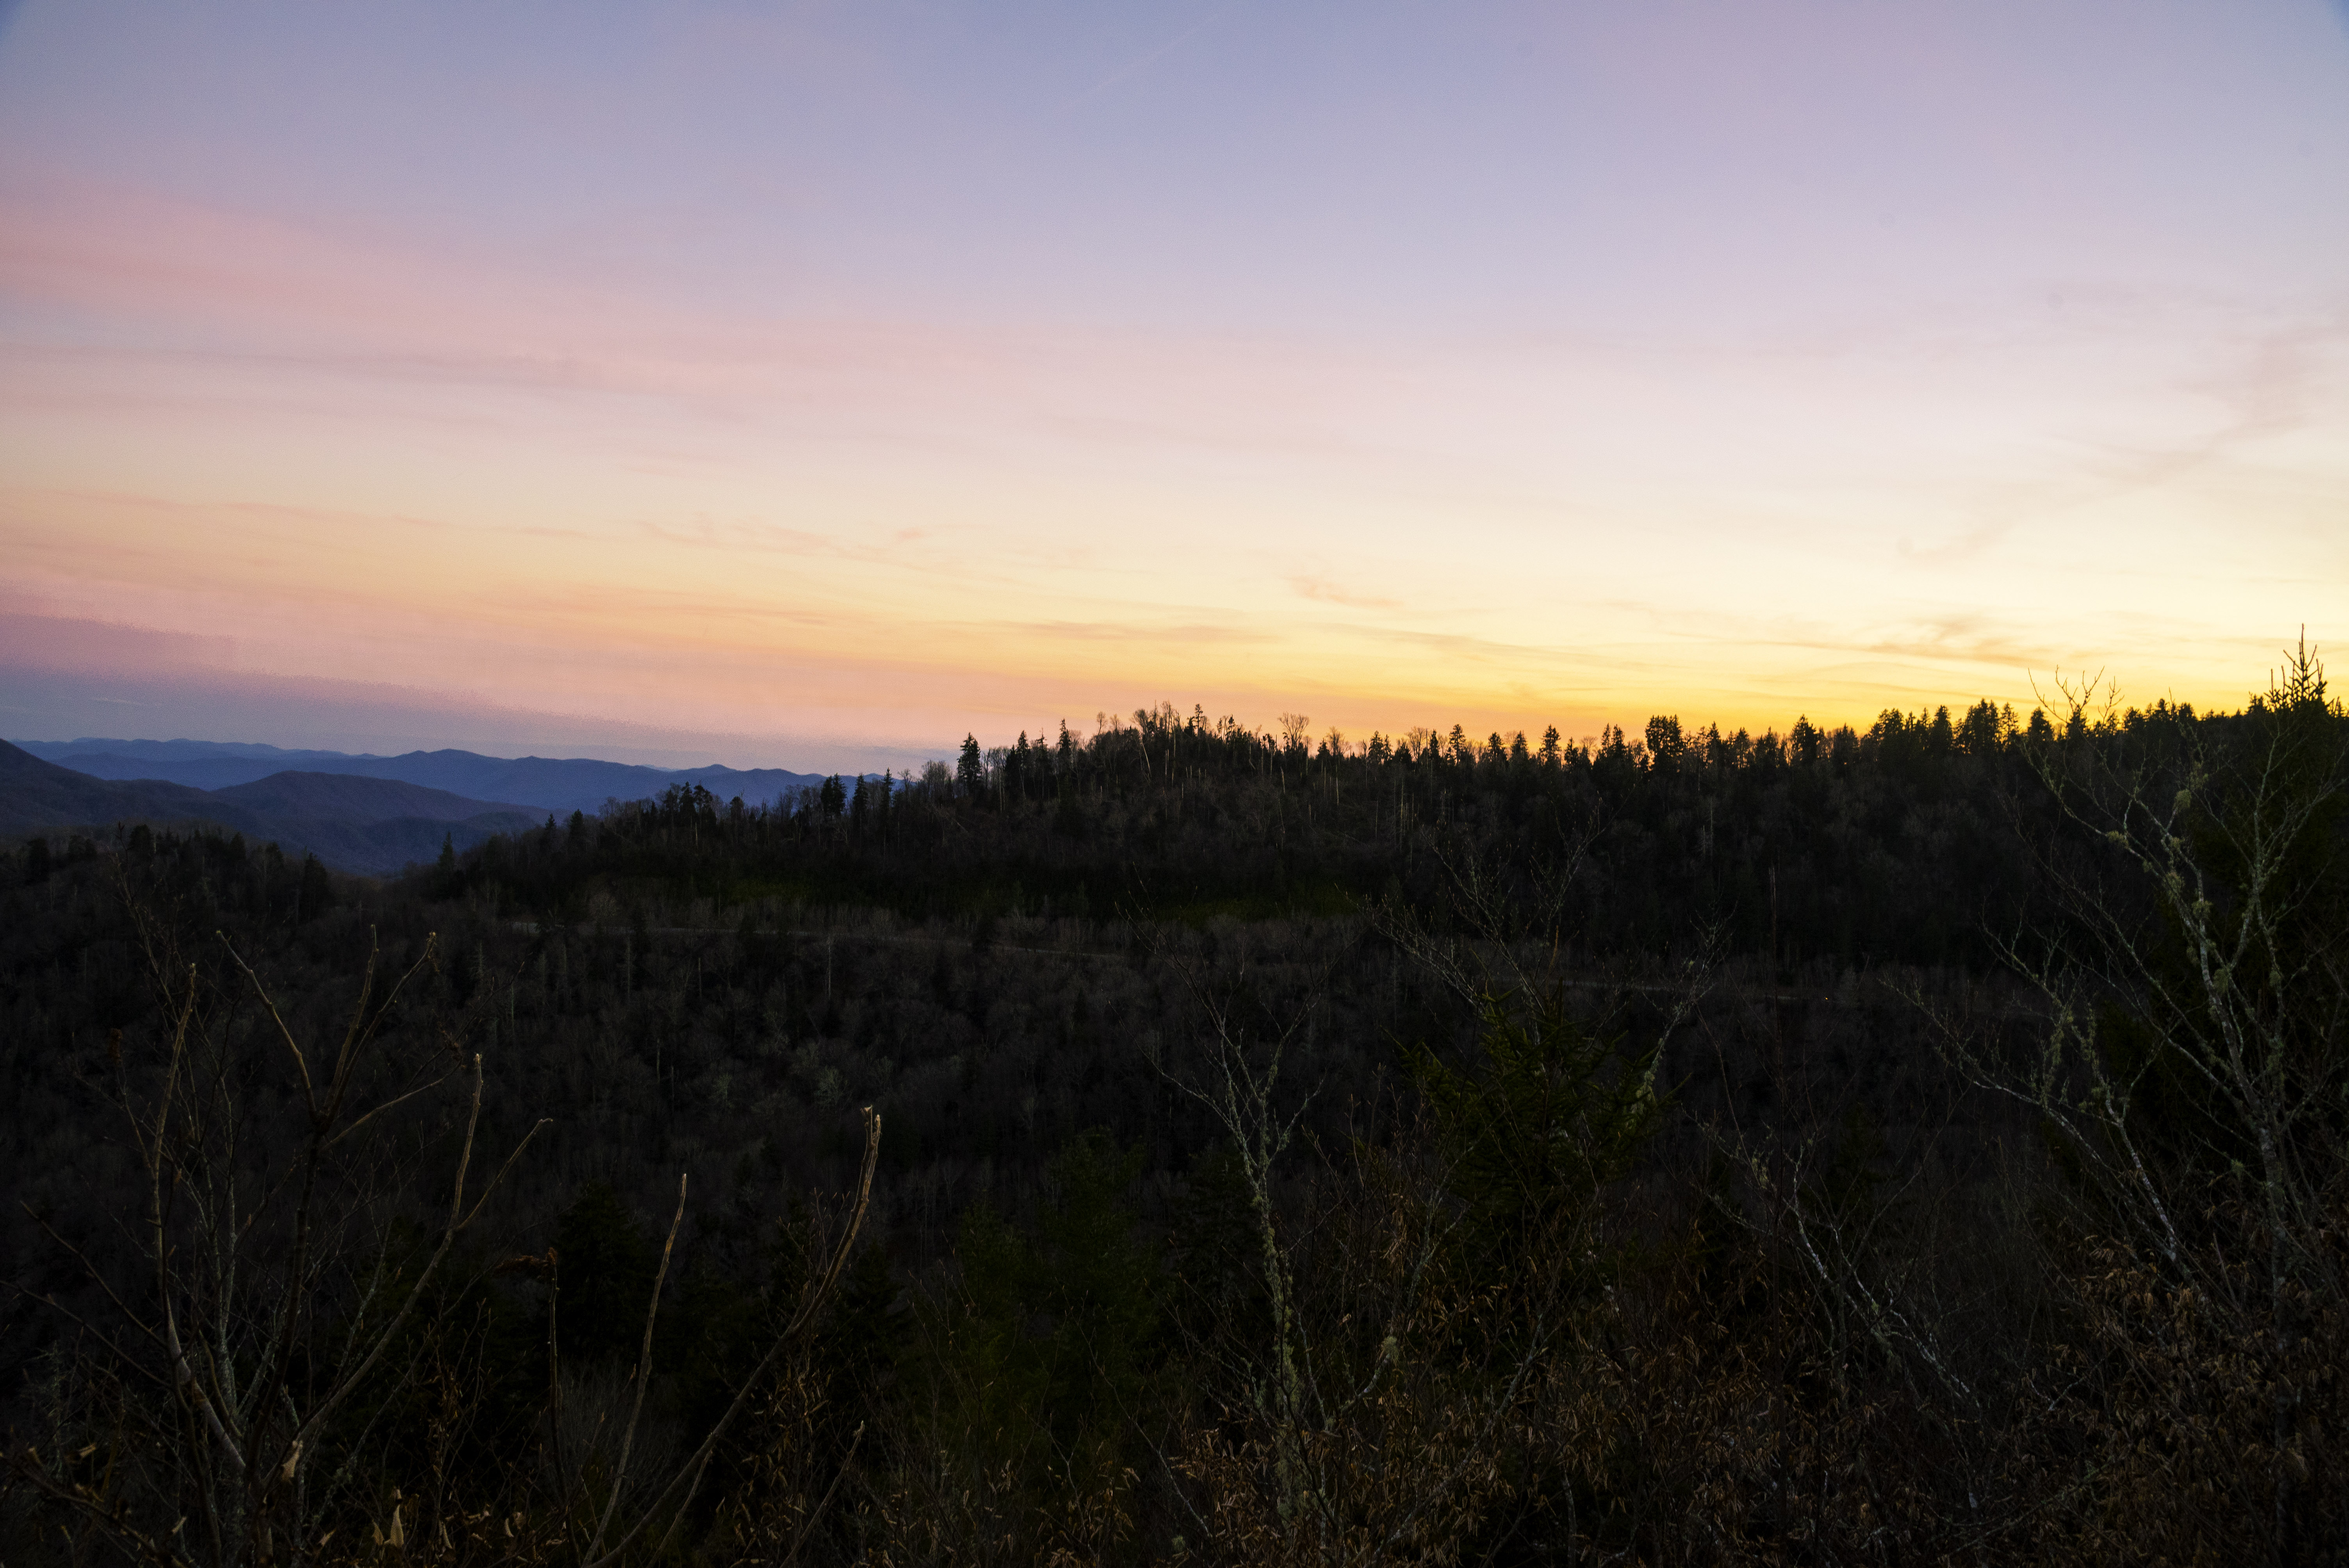 Caption: The sun sets over Great Smoky Mountains National Park, Tennessee.  , Credit: Public domain, www.goodfreephotos.com